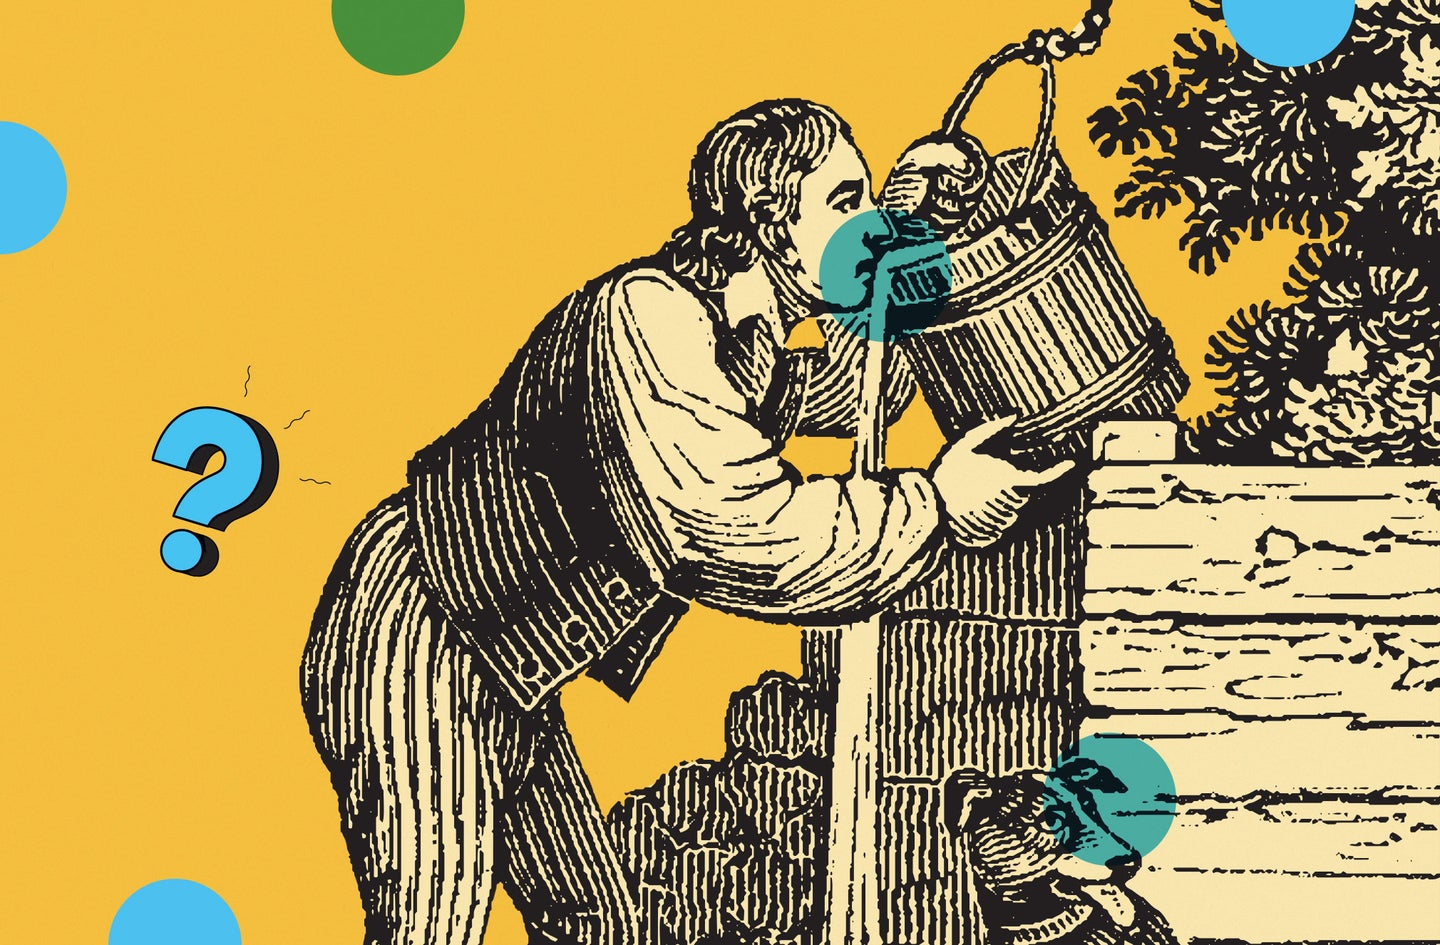 art illustration of a person drinking from a bucket.